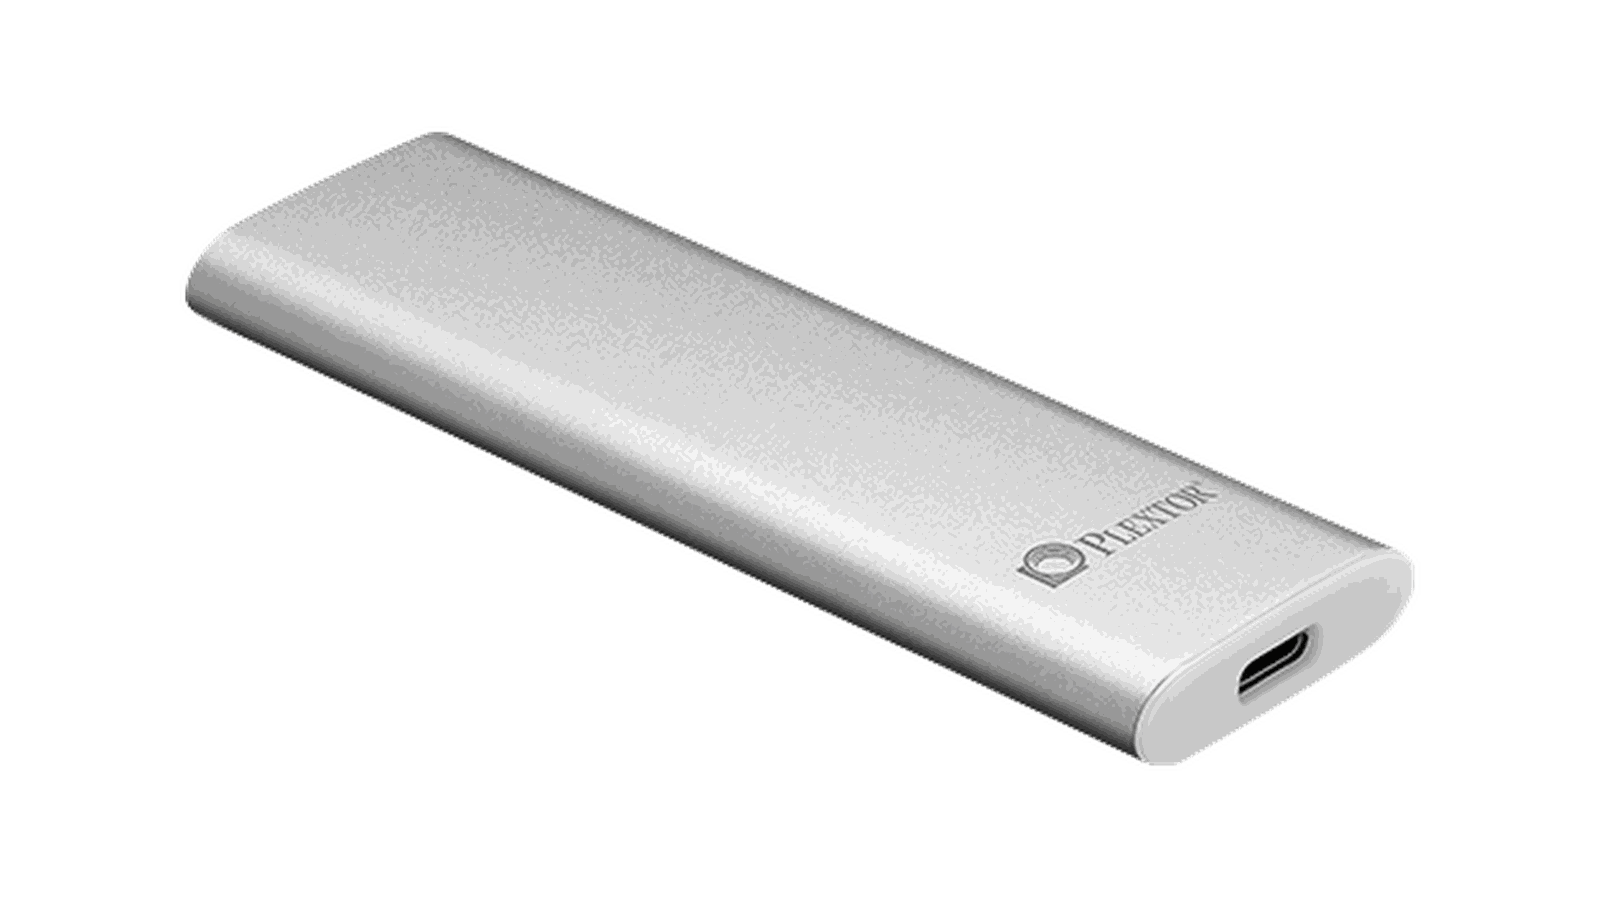 If you're going to buy a new external SSD, you might as well get this USB-C one